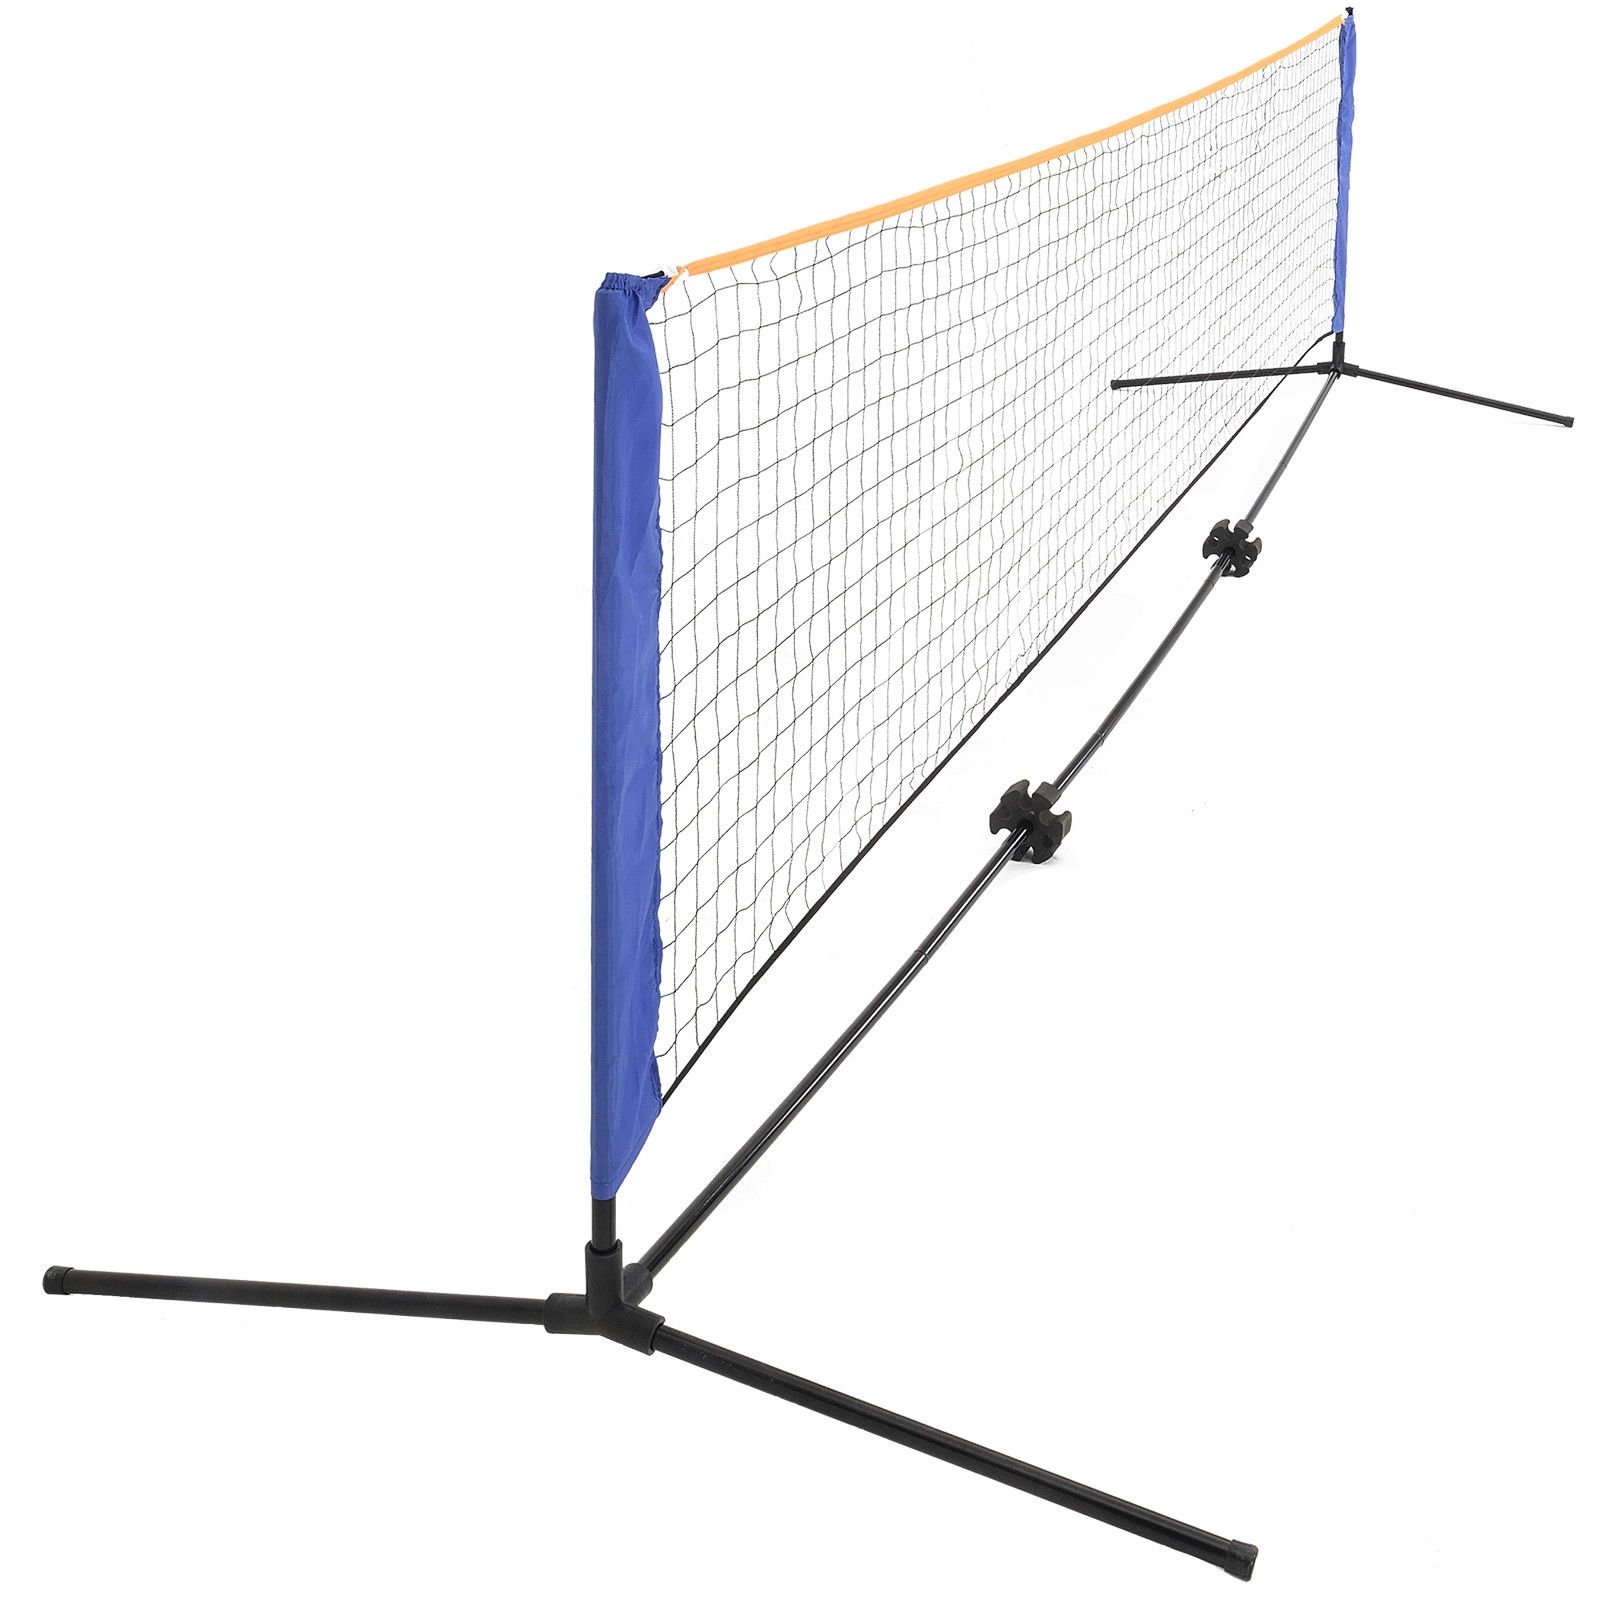 New 20FTx2.9FT Portable Badminton Net Tennis Volleyball Play Training w/ Carrying Bag